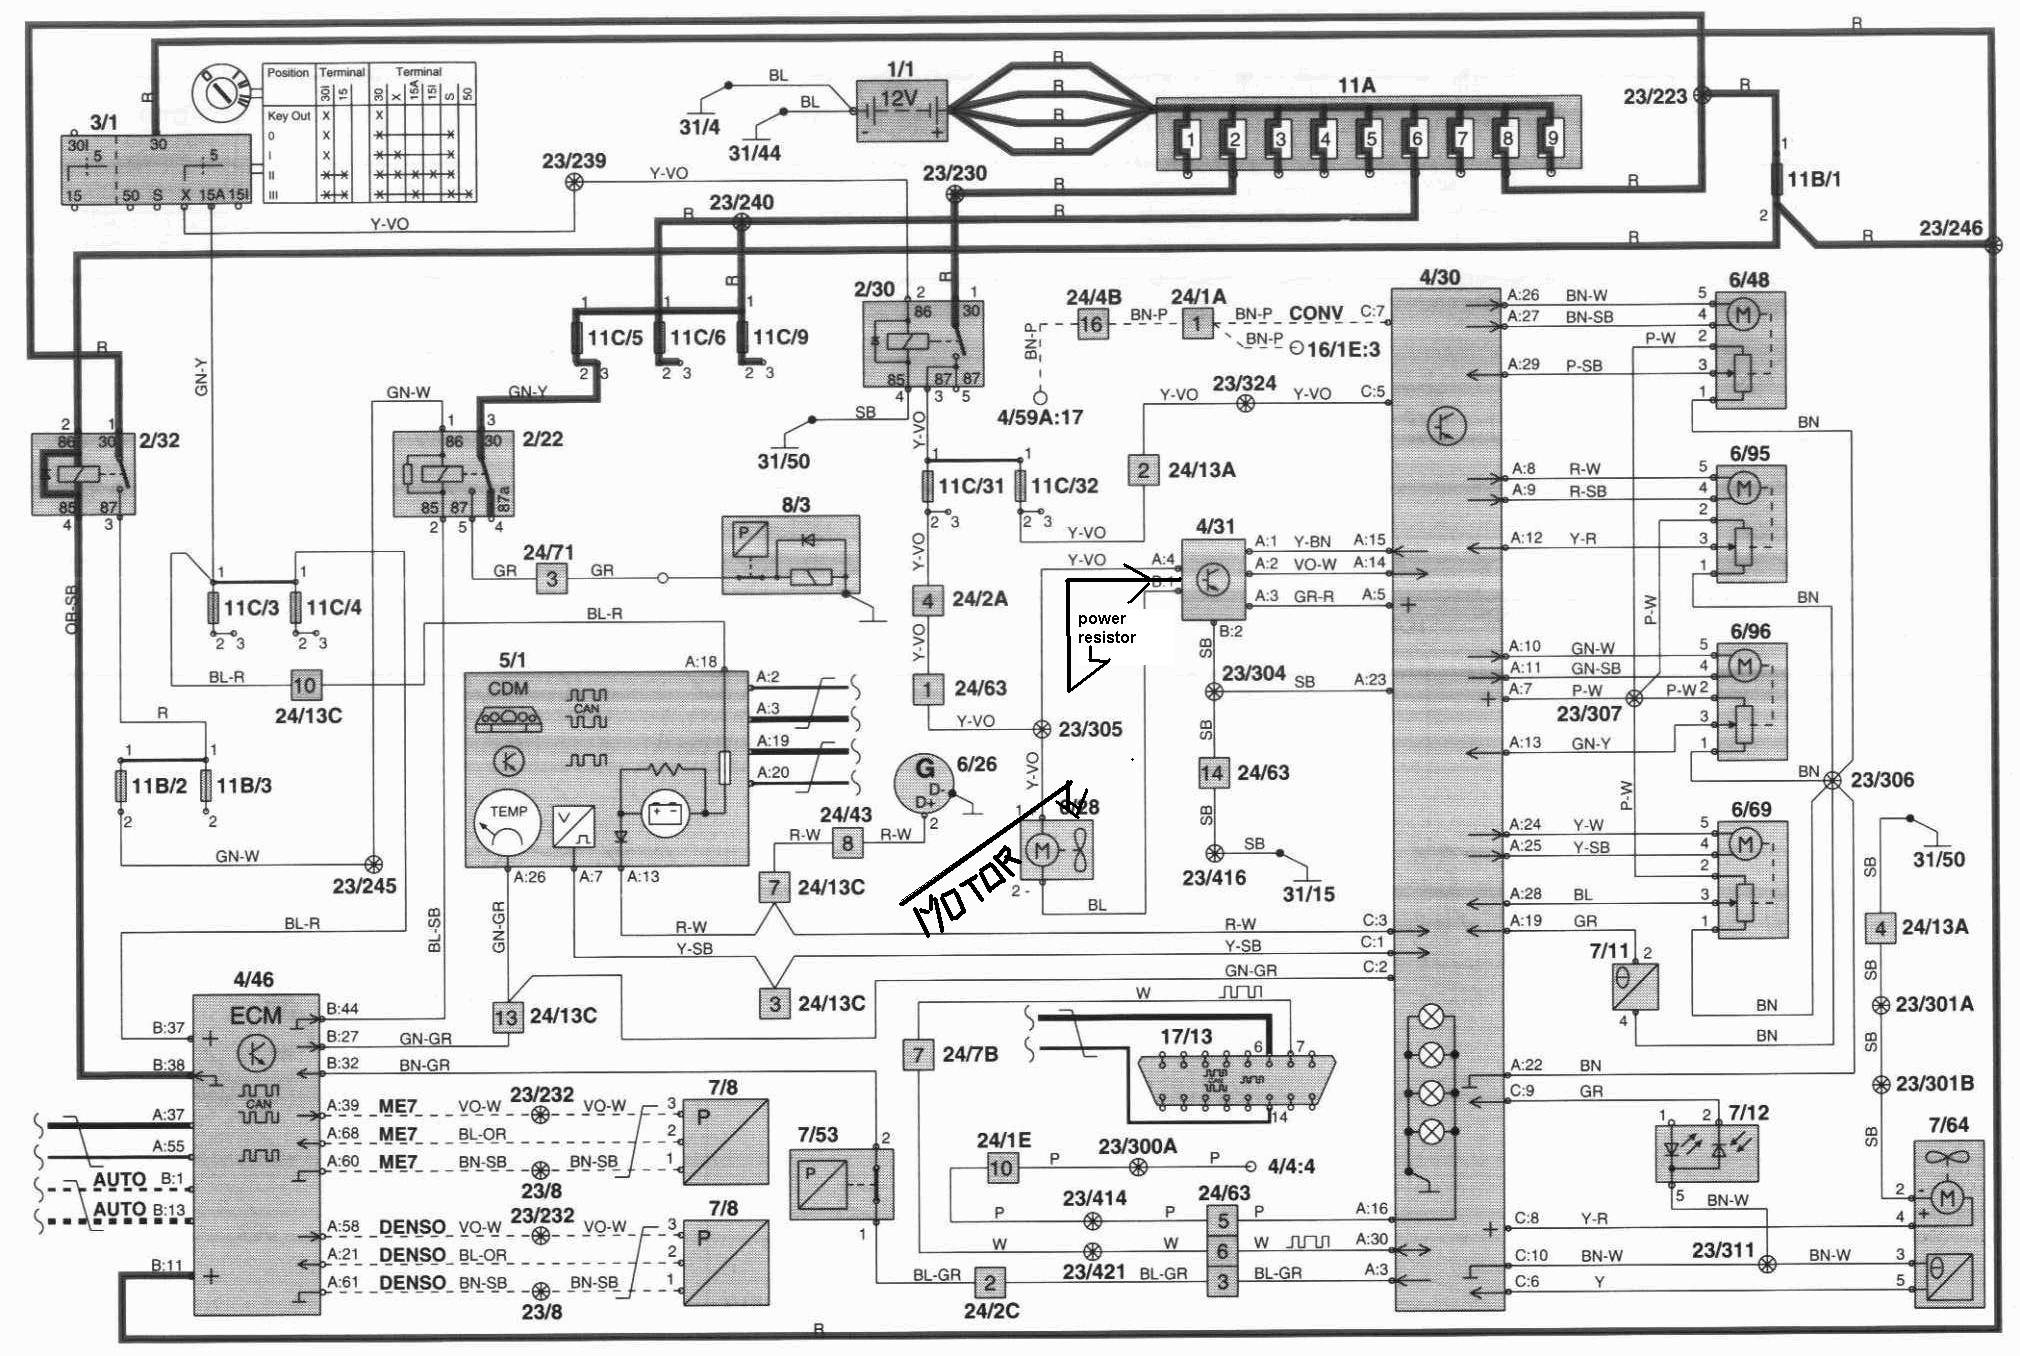 2009 07 05_114710_84946327 volvo climate control questions answered volvo s40 cem wiring diagram at mifinder.co